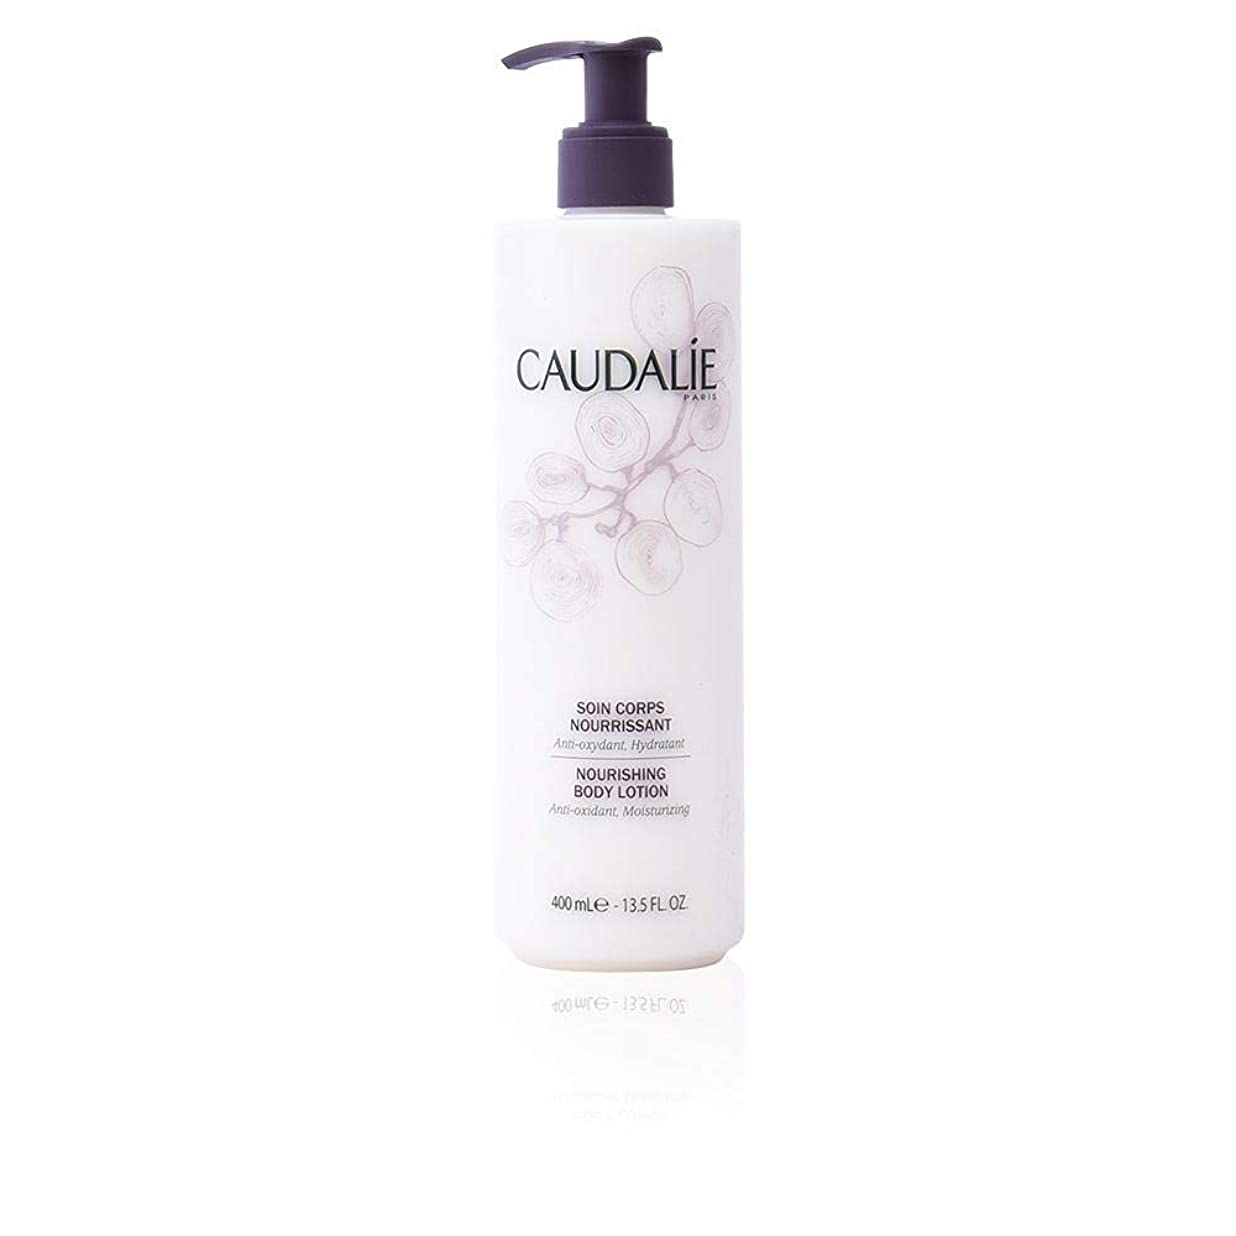 覗くスモッグ明示的にCaudalieNourishing Body Lotion (For Normal to Dry Skin) 400ml/13.5oz【海外直送品】